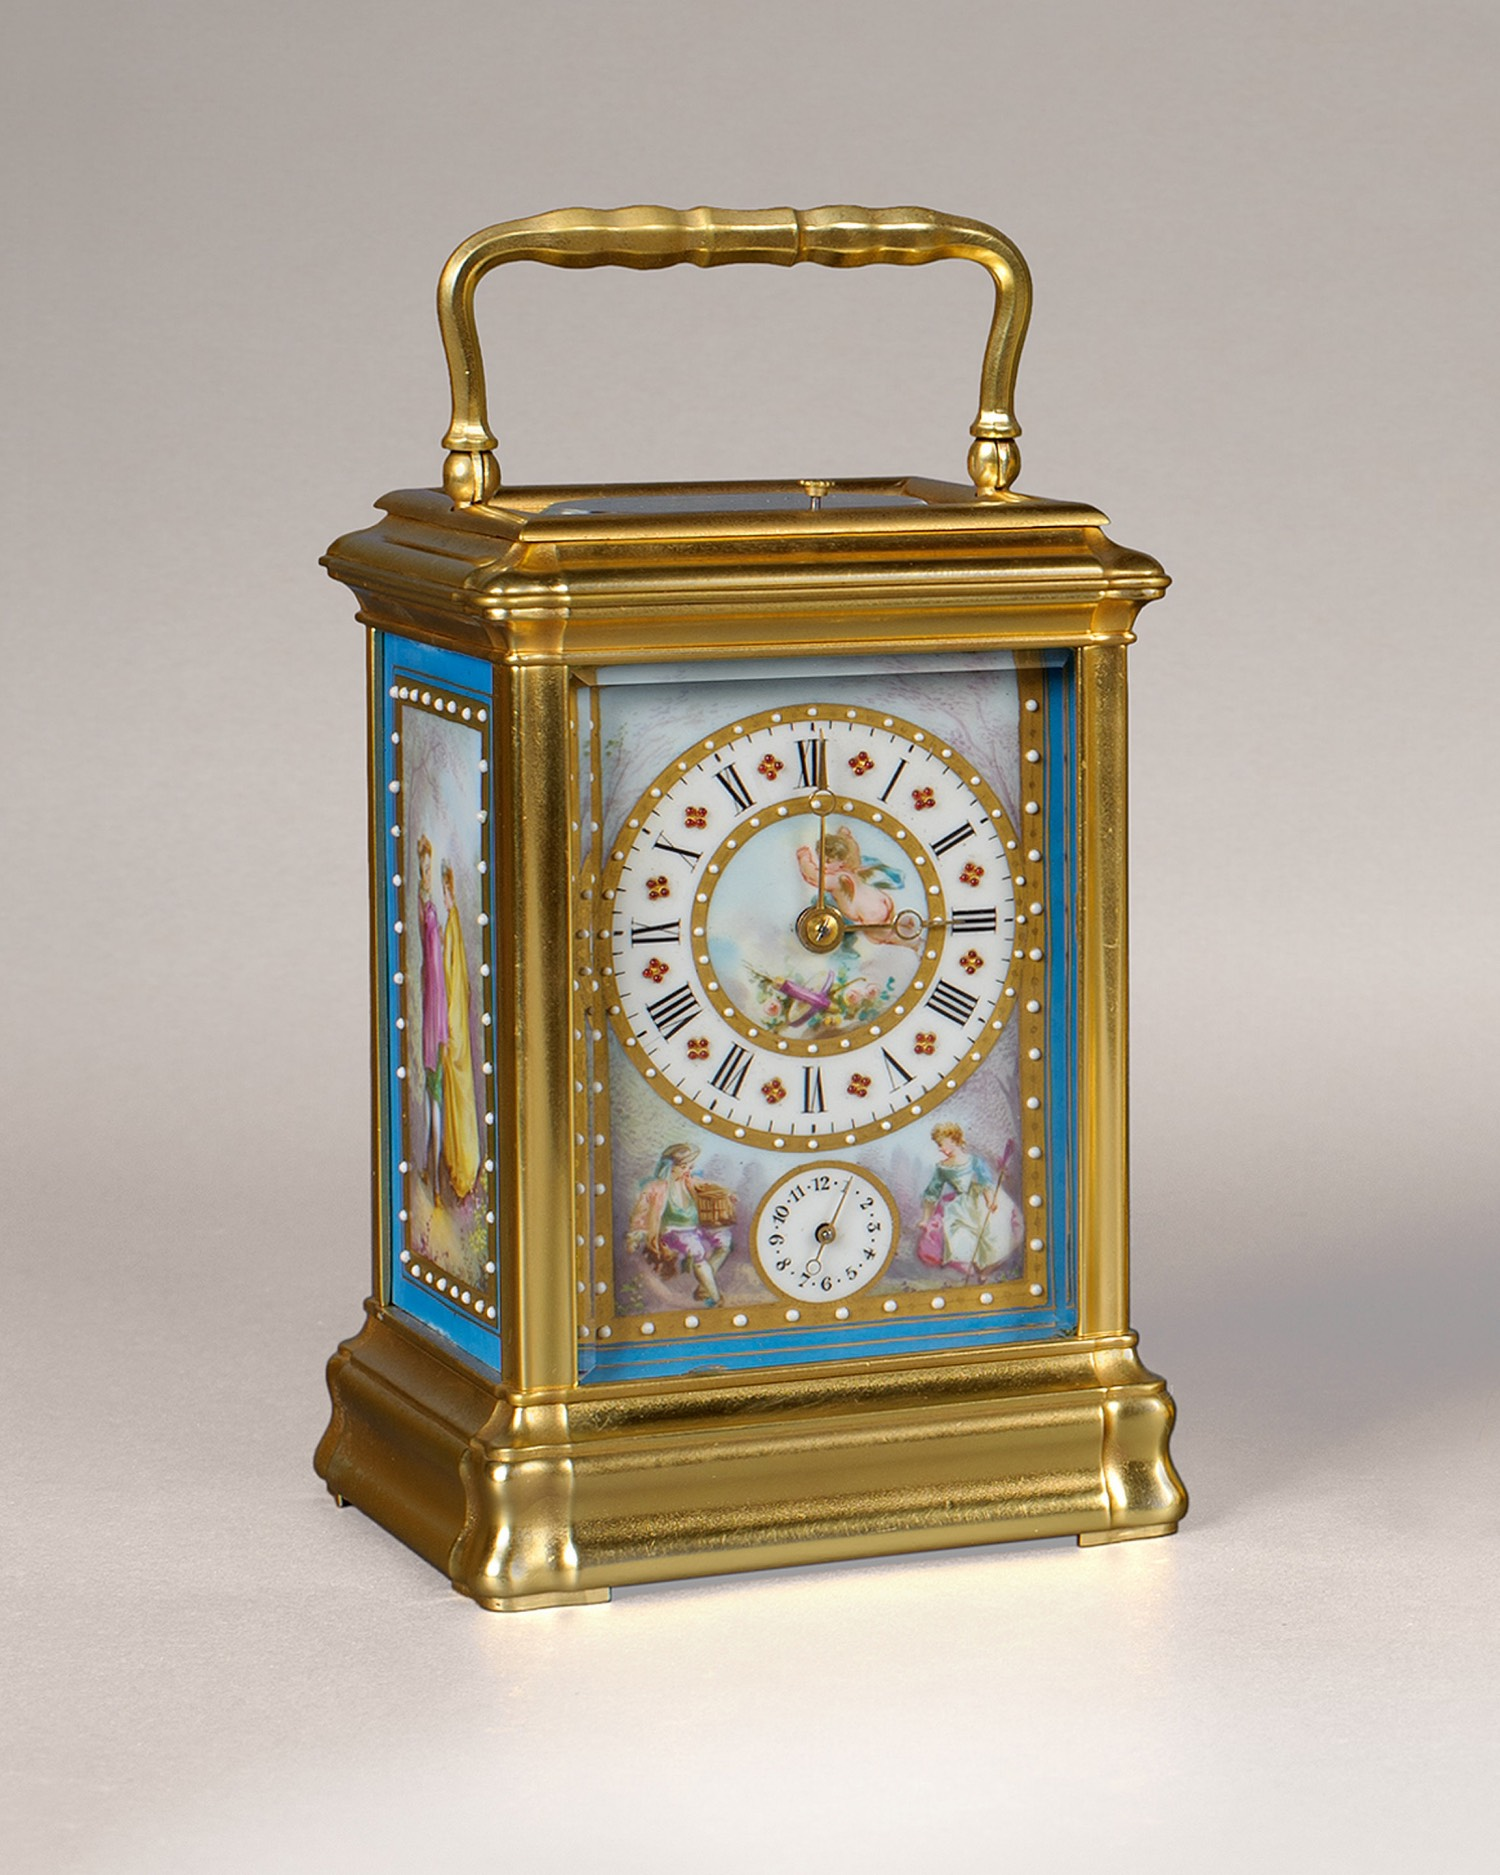 A FINE 'SEVRES' PORCELAIN PANELLED CARRIAGE CLOCK